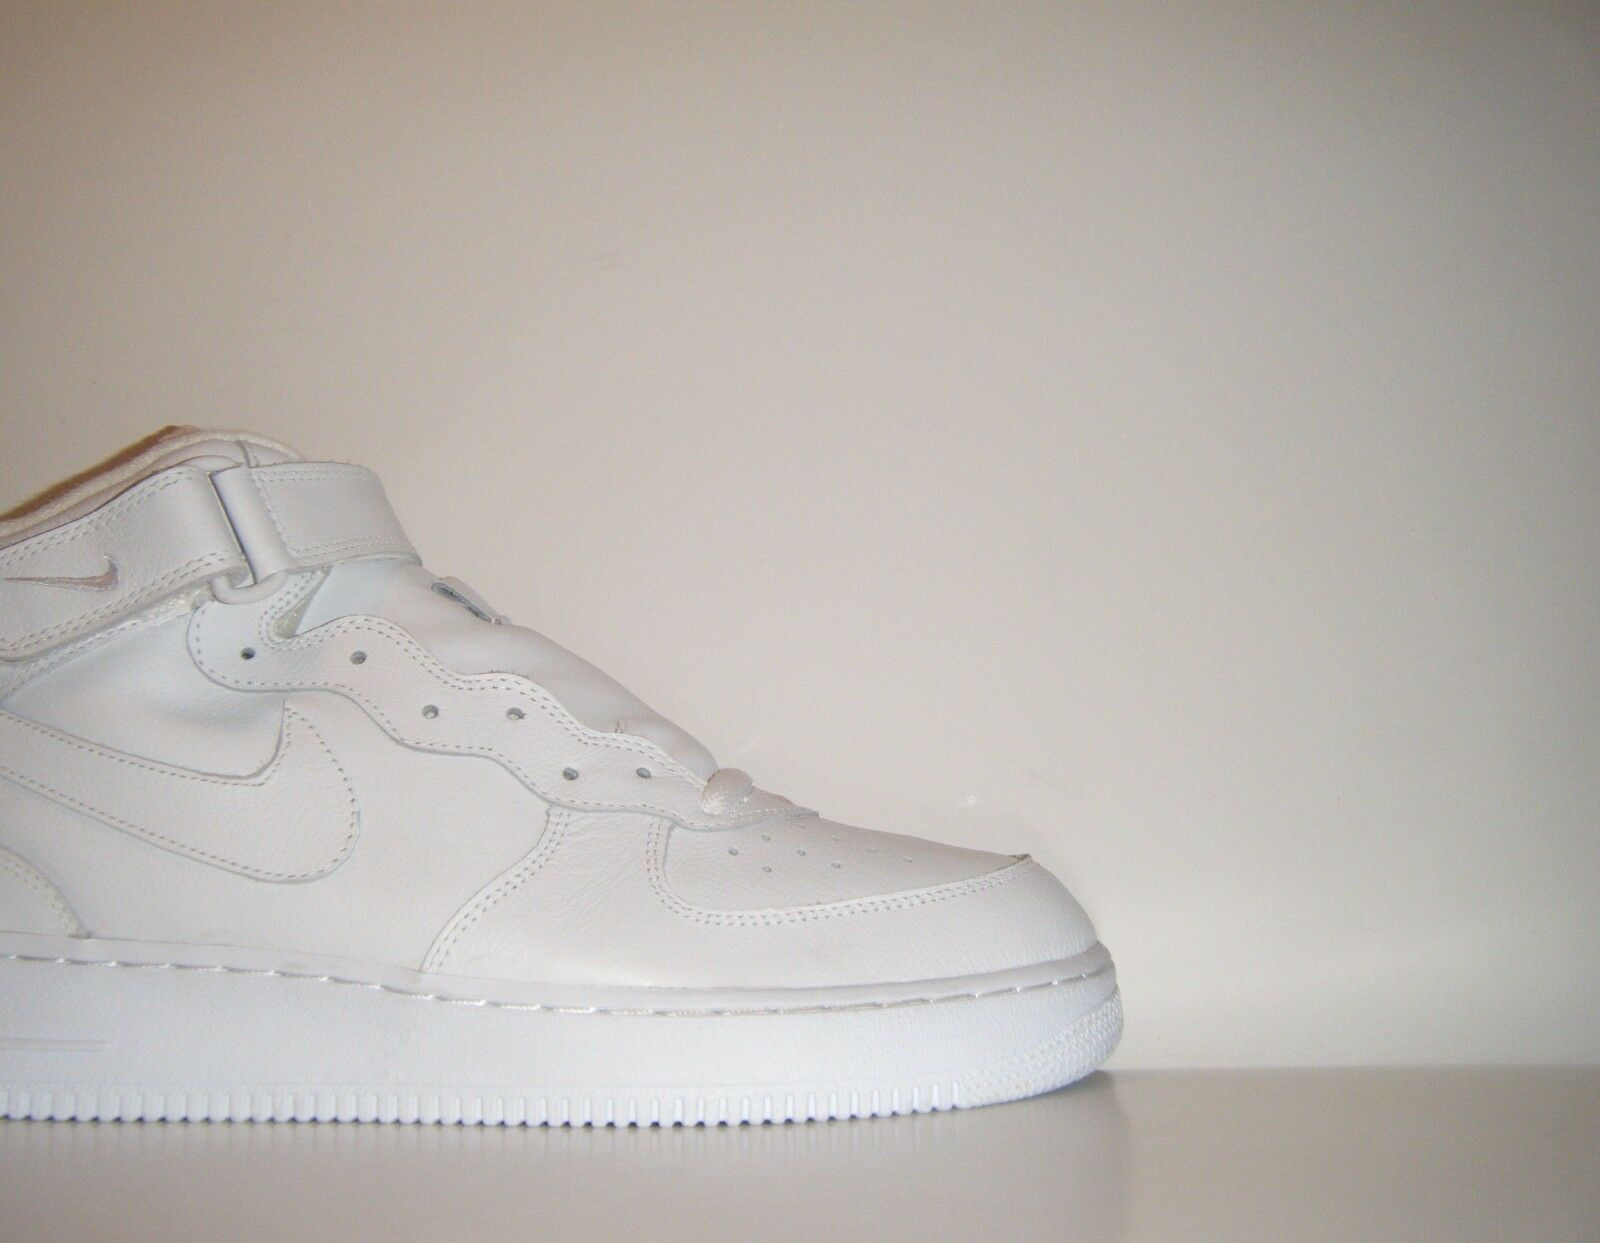 OG Vtg 2018 Nike Air Force 1 Mid ALL WHITE QS Sz. 14 SP RARE Sample 624039-117 Comfortable and good-looking